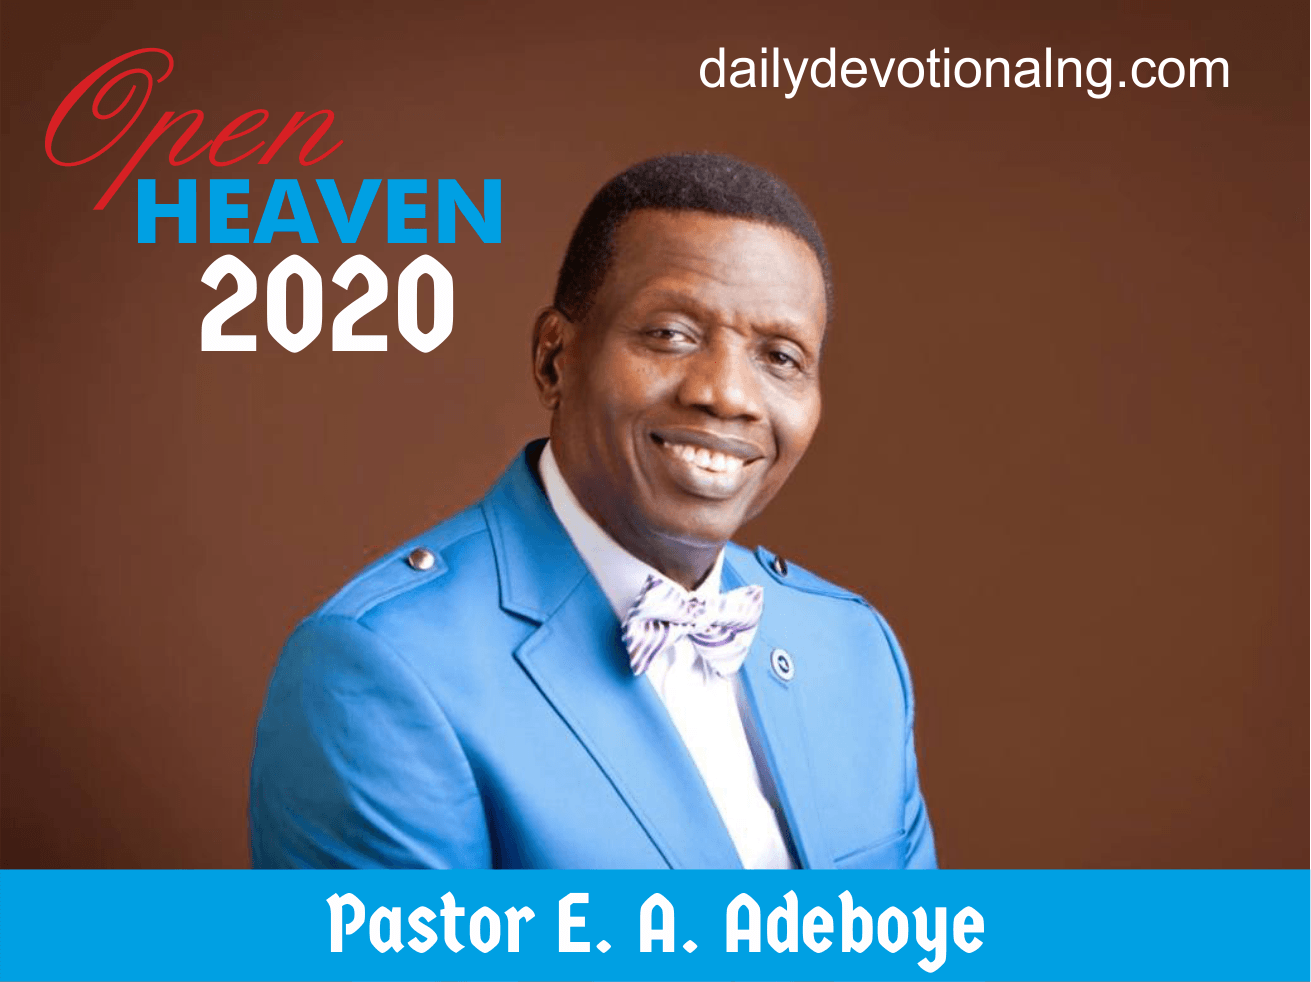 Open Heaven 13th October 2020 Devotional, Open Heaven 13th October 2020 Devotional – Block That Channel 1, Latest Nigeria News, Daily Devotionals & Celebrity Gossips - Chidispalace